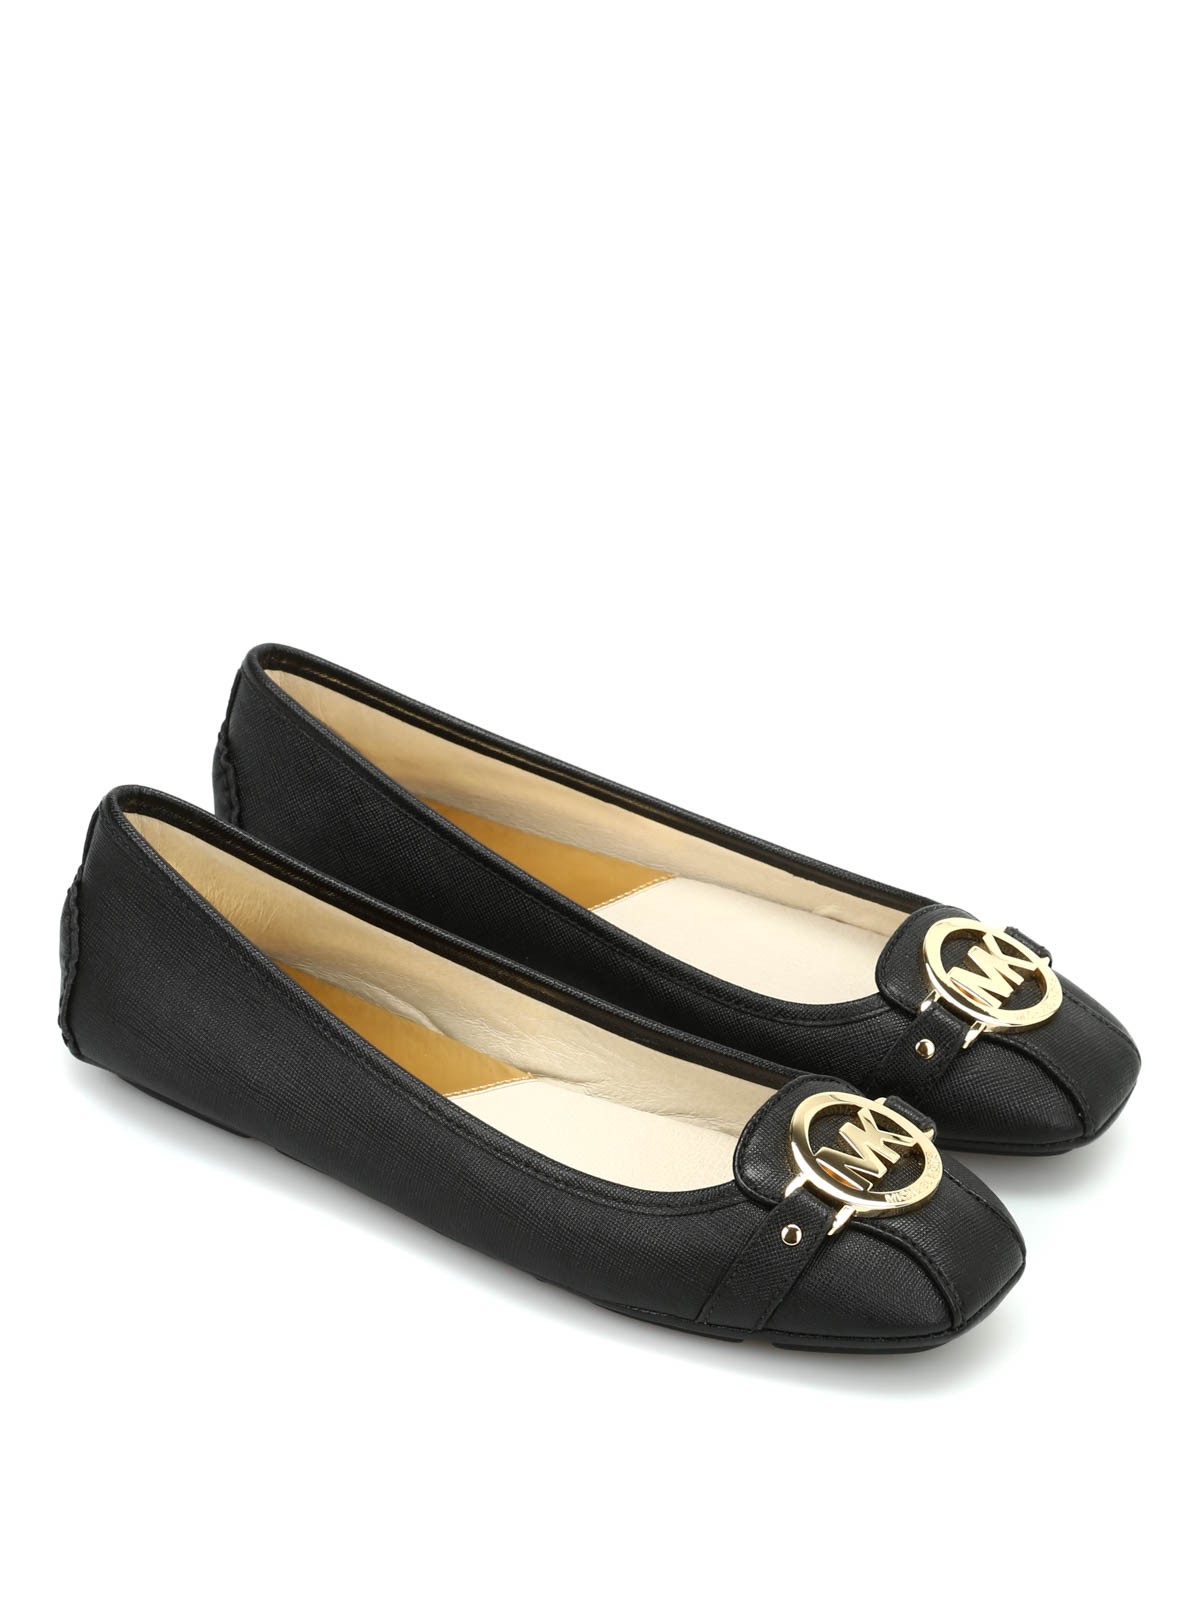 Michael Kors Fulton Shoes Sale